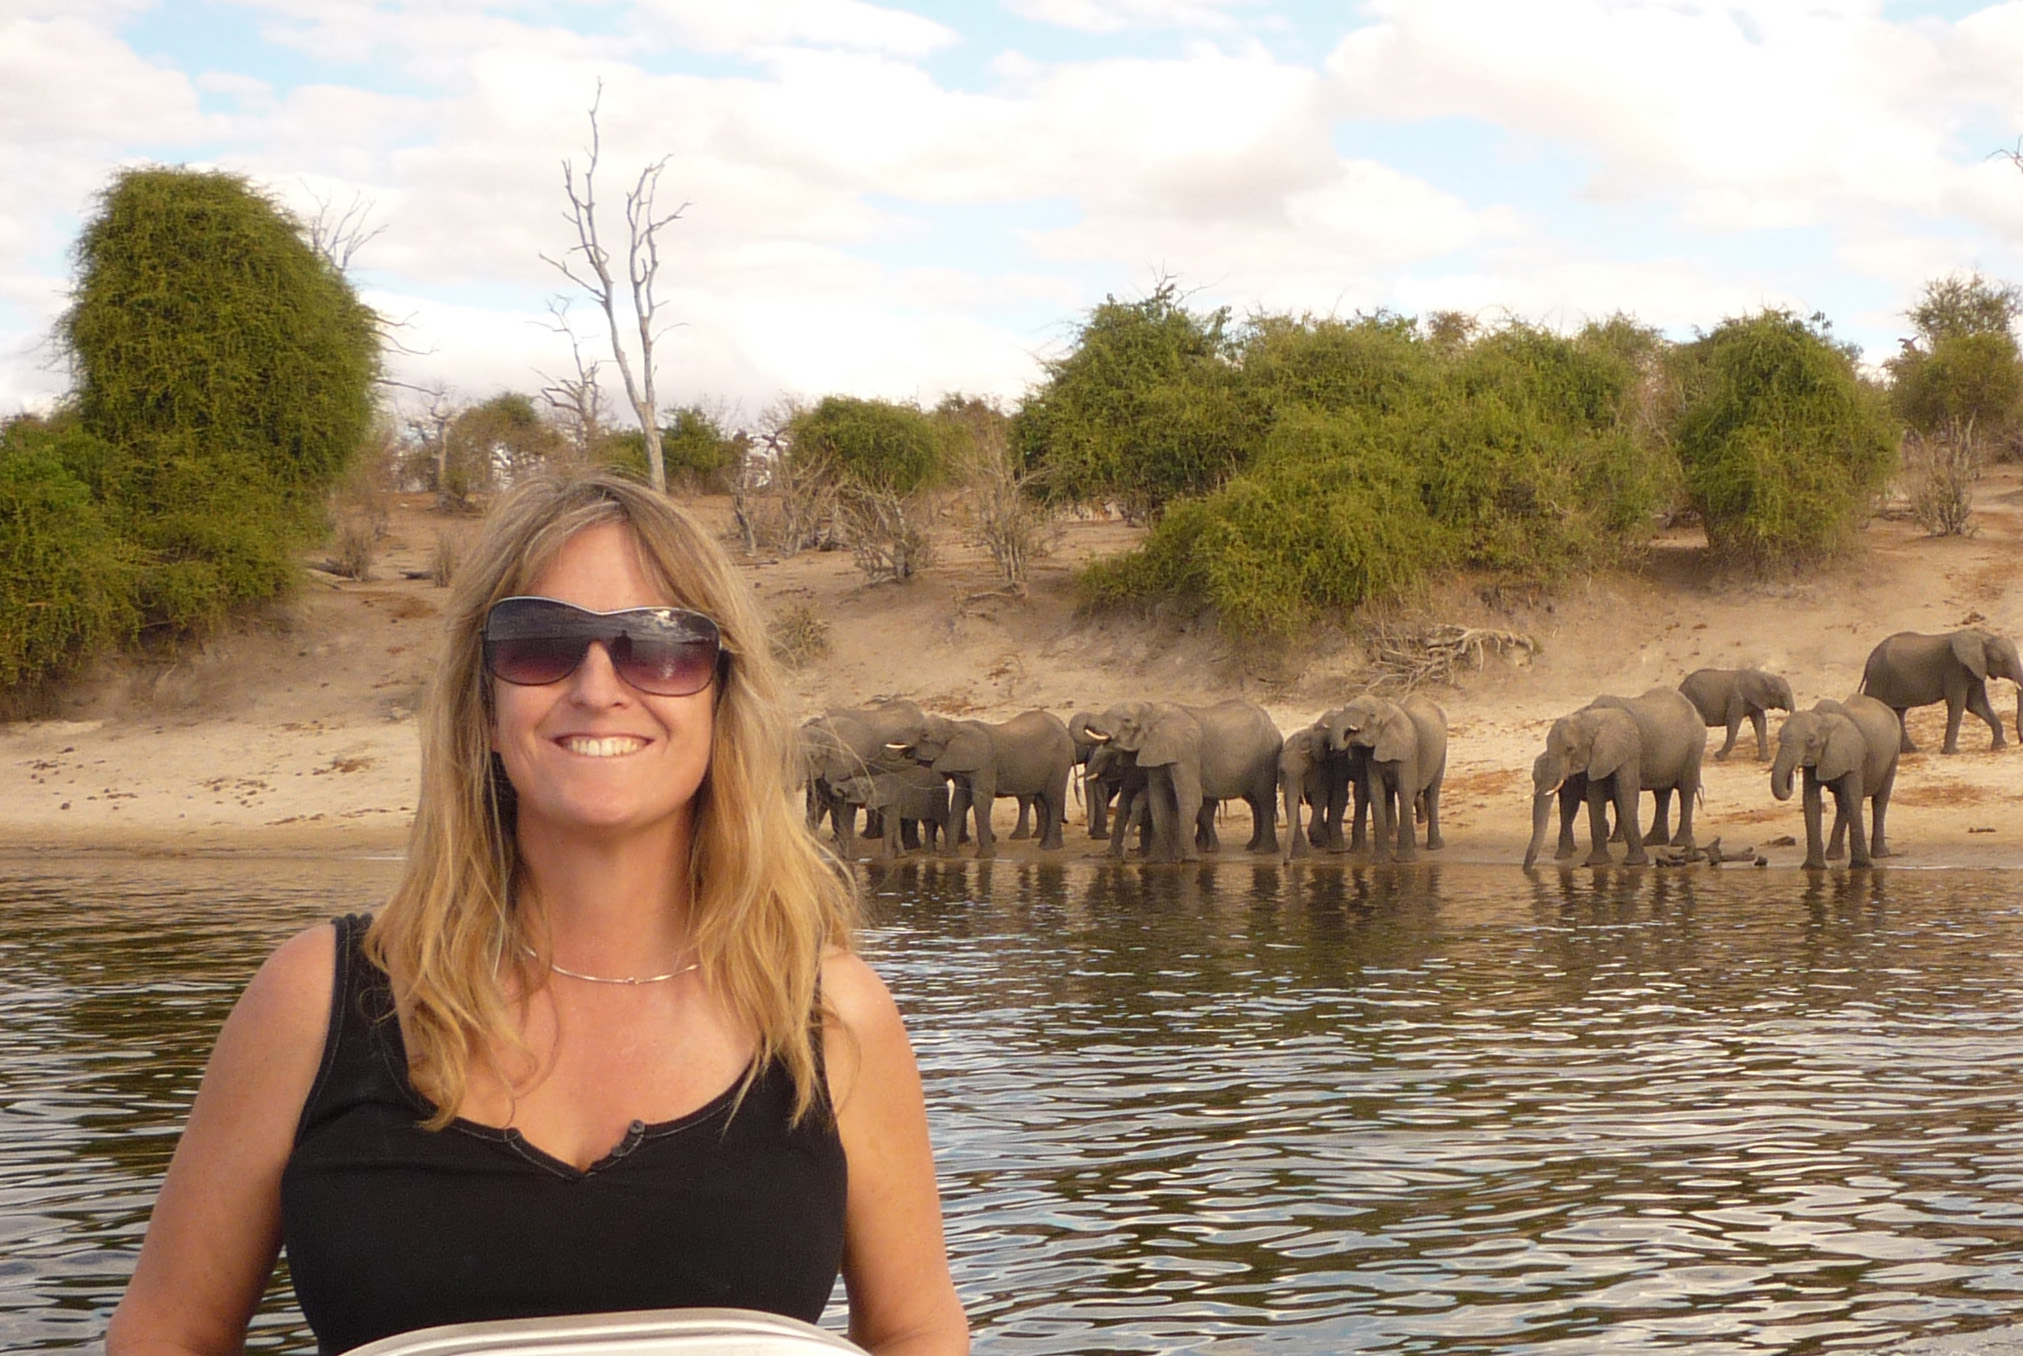 Kathleen Alexander at the helm of a small boat with elephants standing on the shore in the background